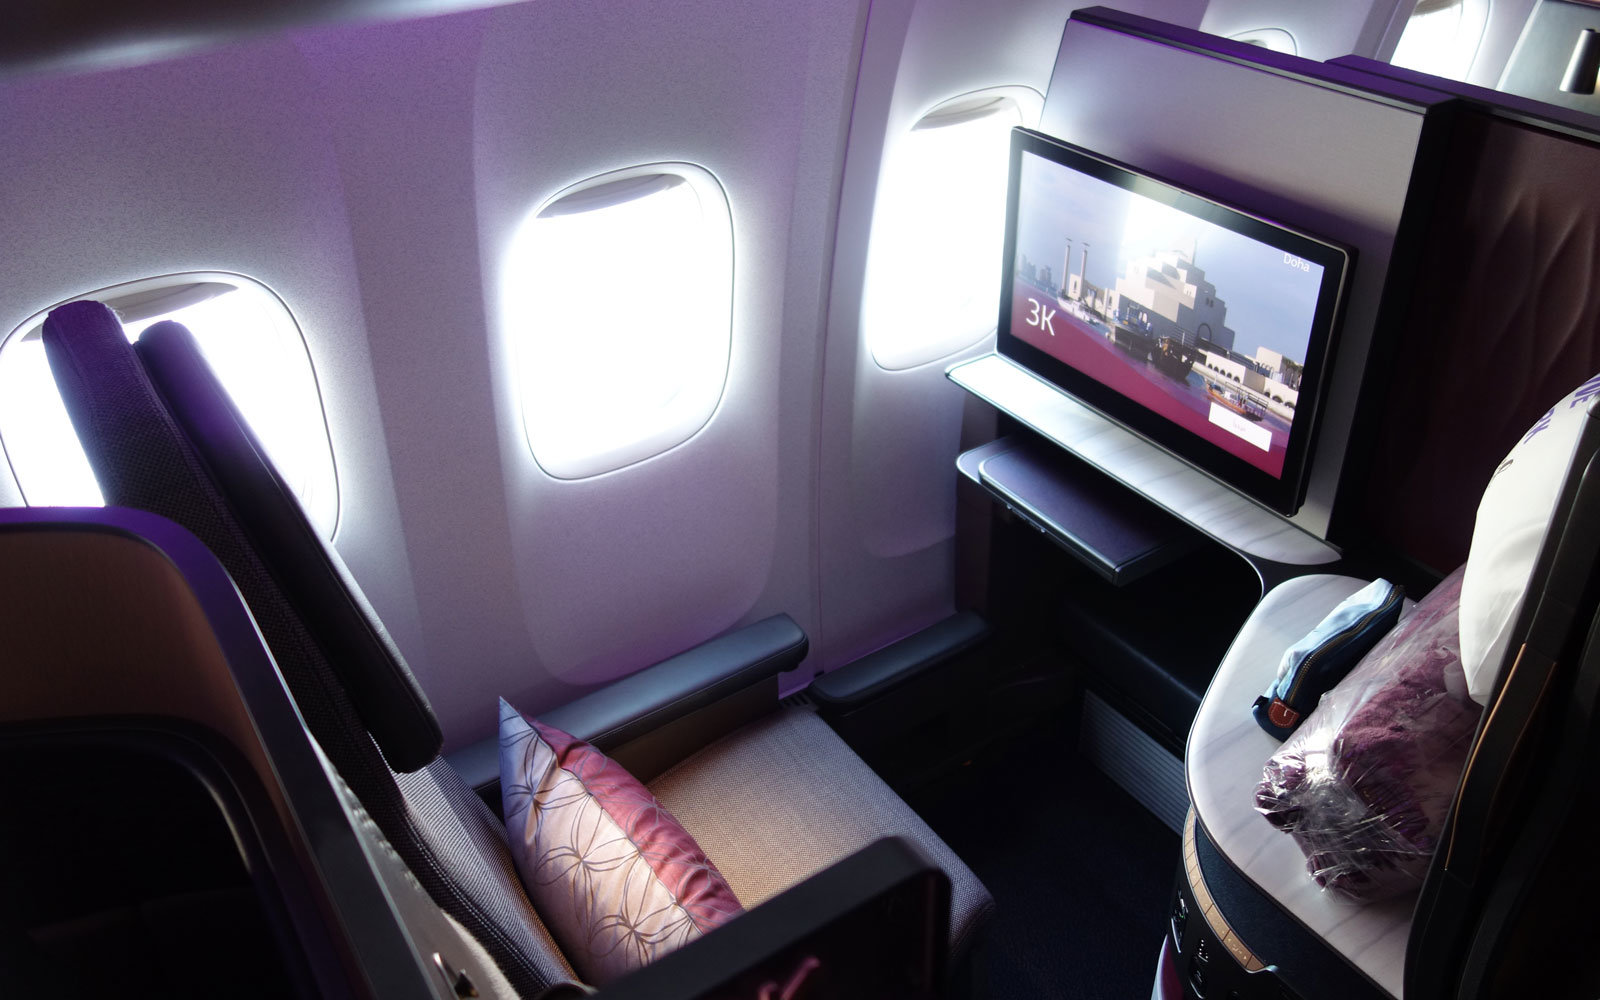 Qatar's Business Class Suites Have Sliding Doors So No One Can Bother You — Here's How to Fly in Them If You Don't Have $6,000 to Spend